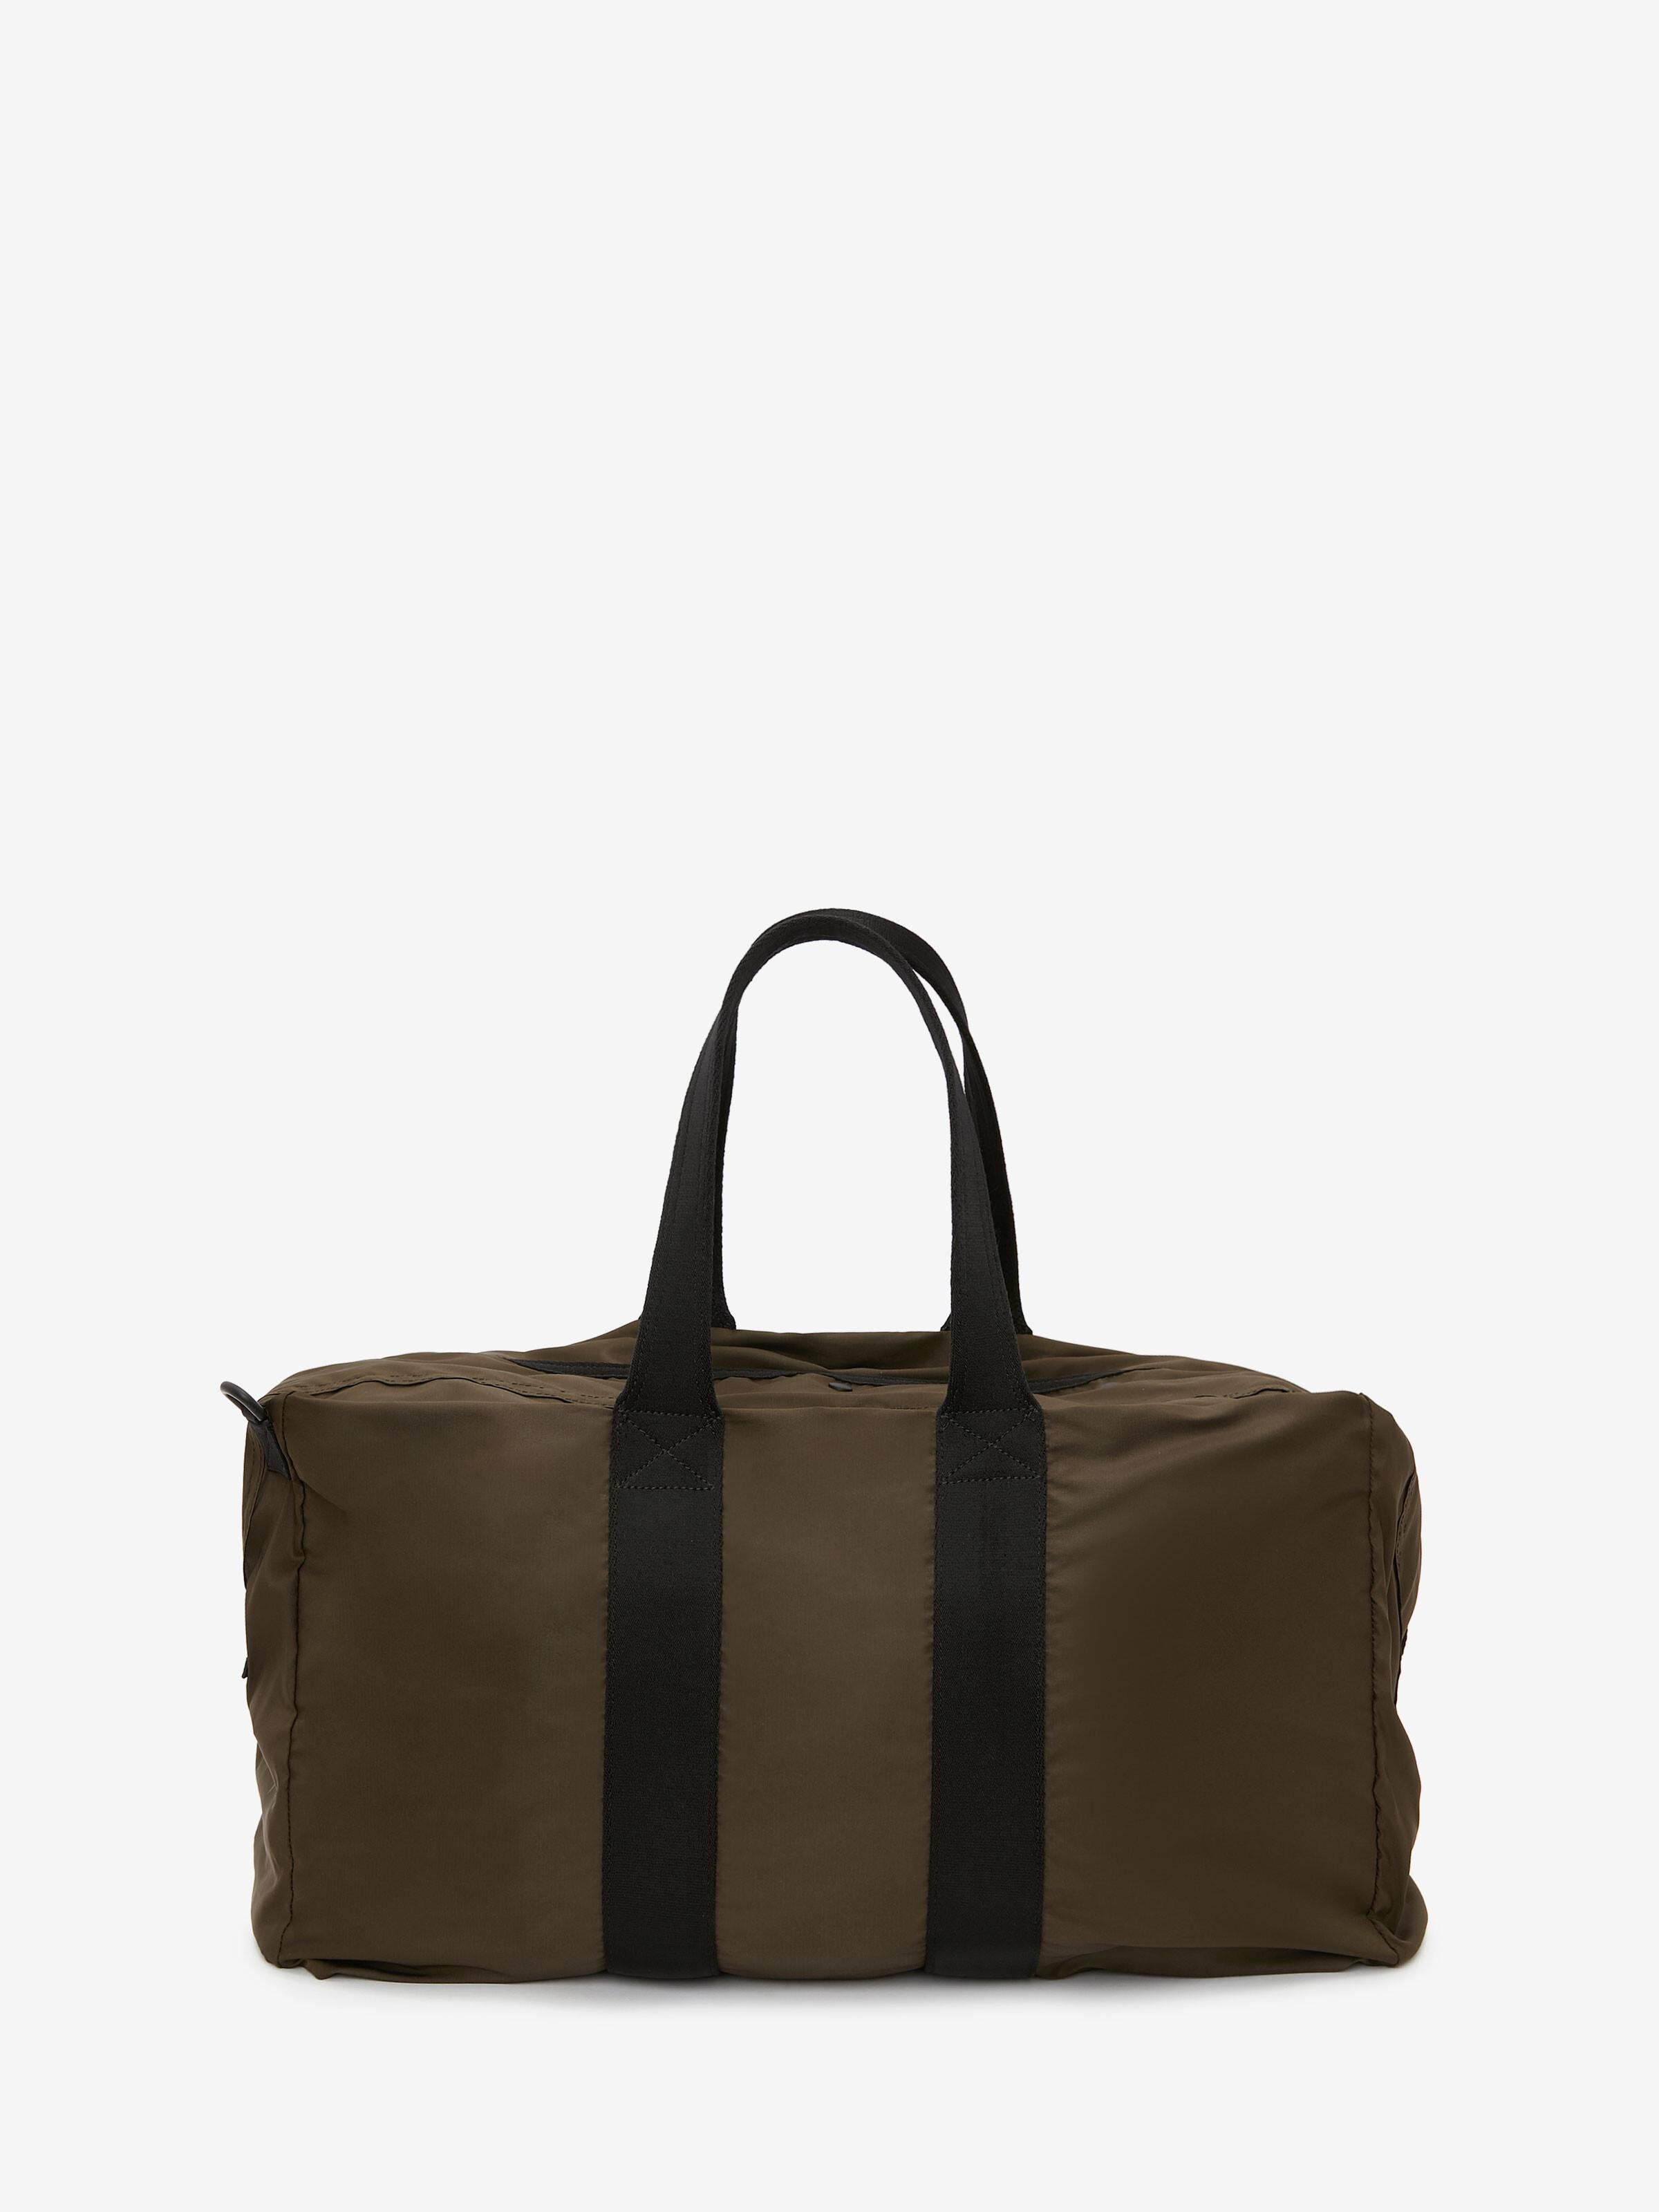 McQueen Tag Zipped Tote 2